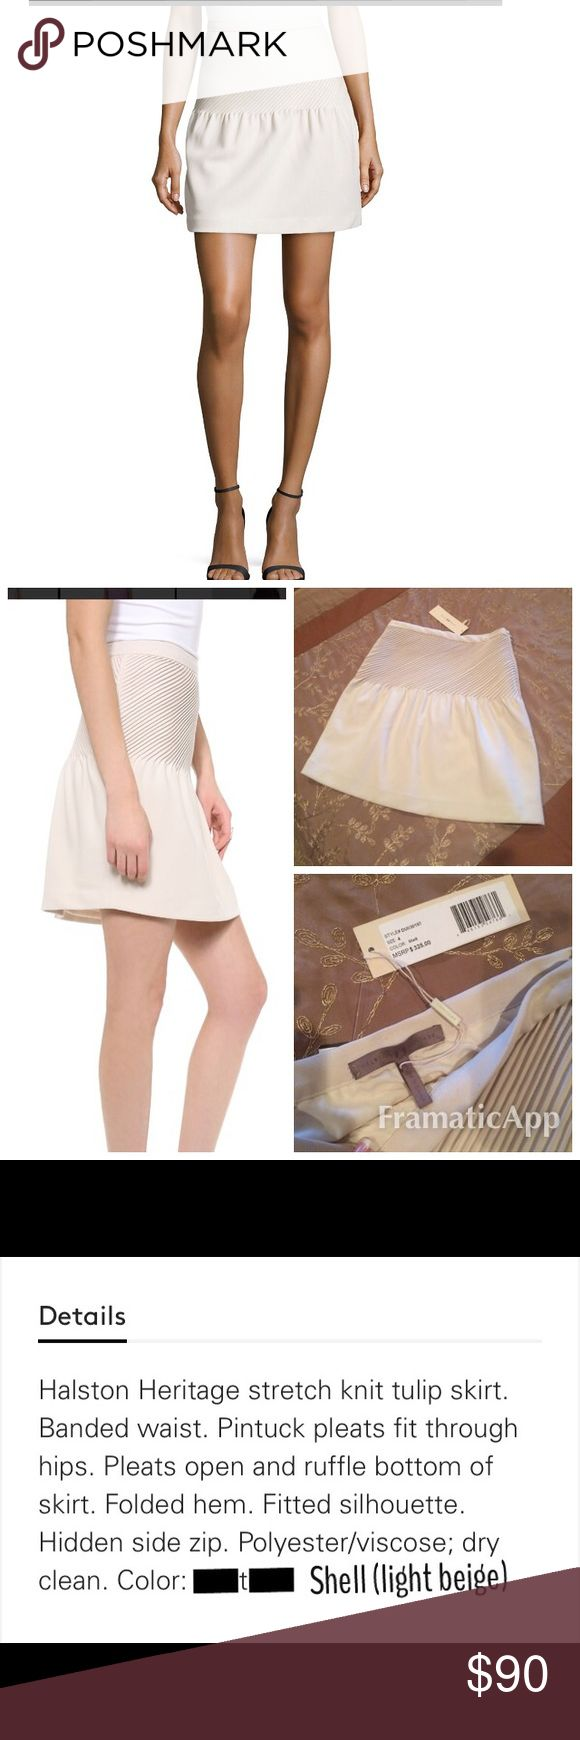 HALSTON Tulip Skirt The QUALITY of this skirt is GORGEOUS!!! ITS A bone/shell/light beige color. Retail is $325- its New With Tags. Please read photo for full description. Side hidden zip. Halston Heritage Skirts Mini